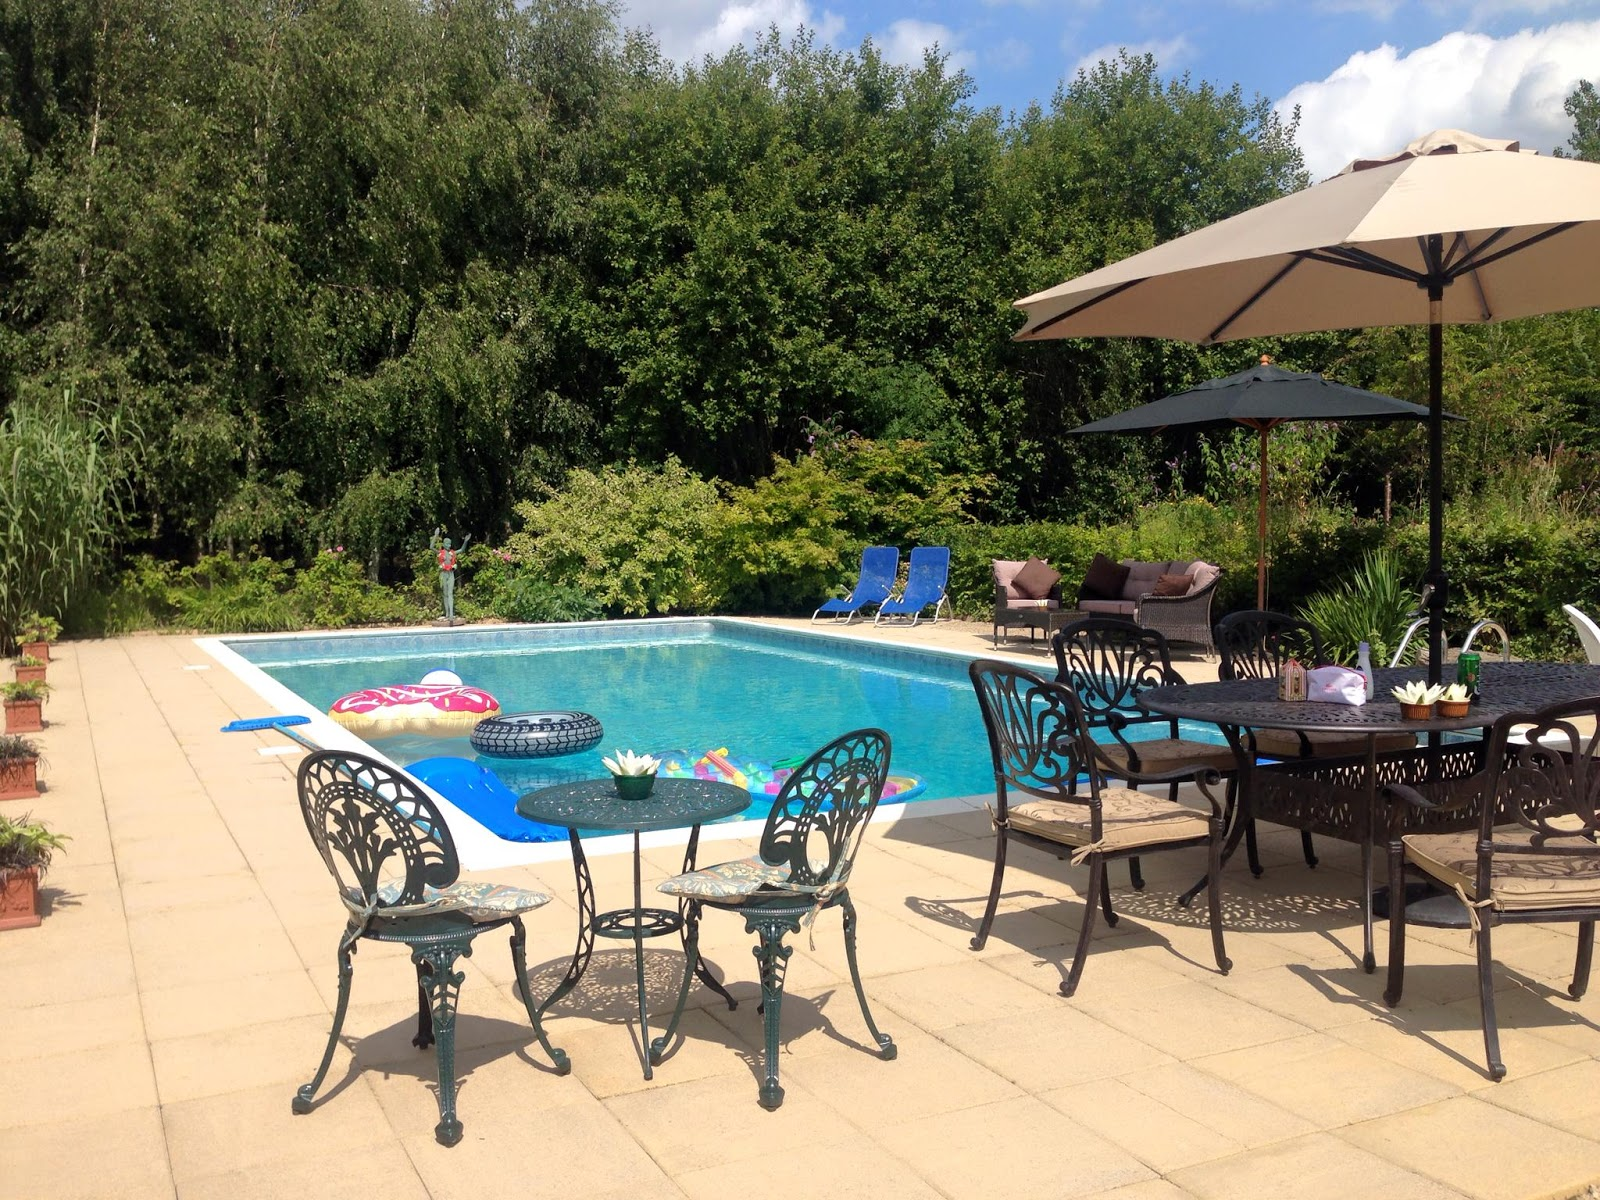 charlotte in england sunshine u003d pool party weather